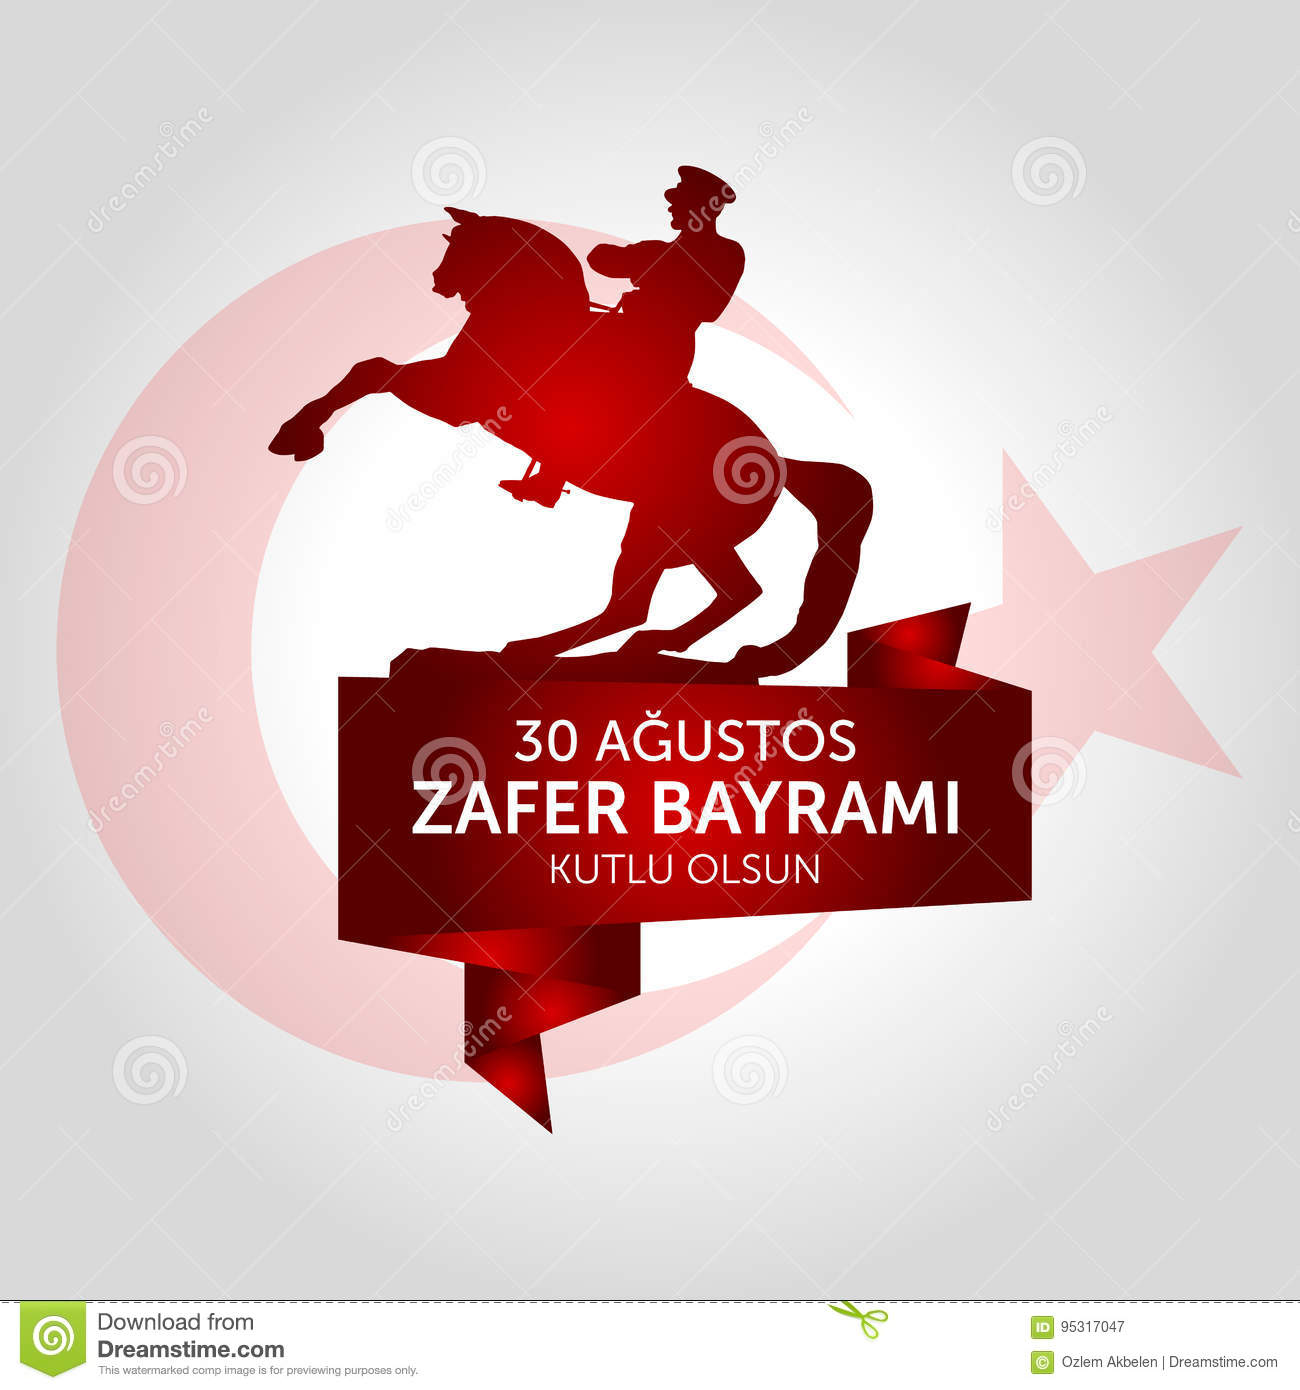 30 August, Victory Day Turkey celebration card.